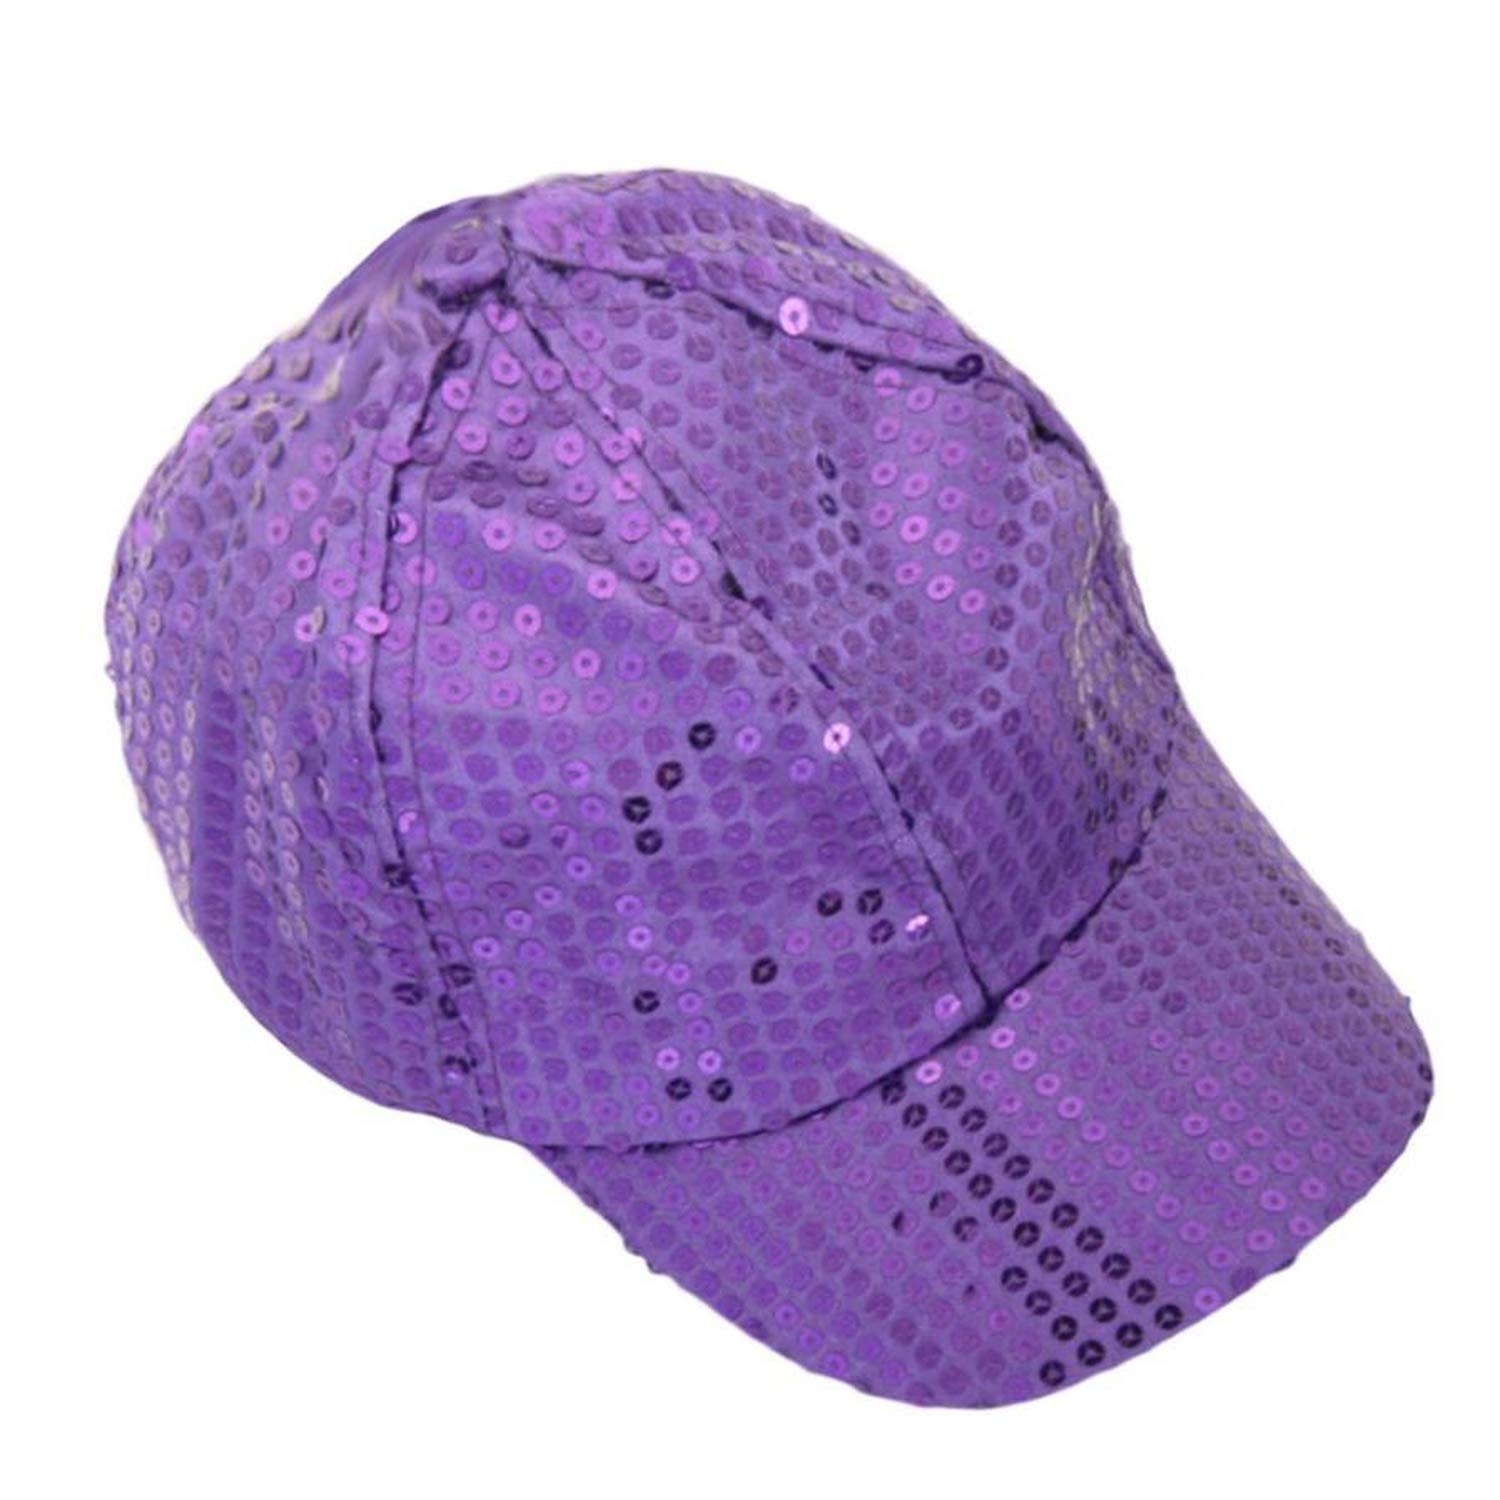 Wension Autumn Summr Sequin Bling Baseball Cap Kids Girls Snapback Hats Cap for Children Boys Girls